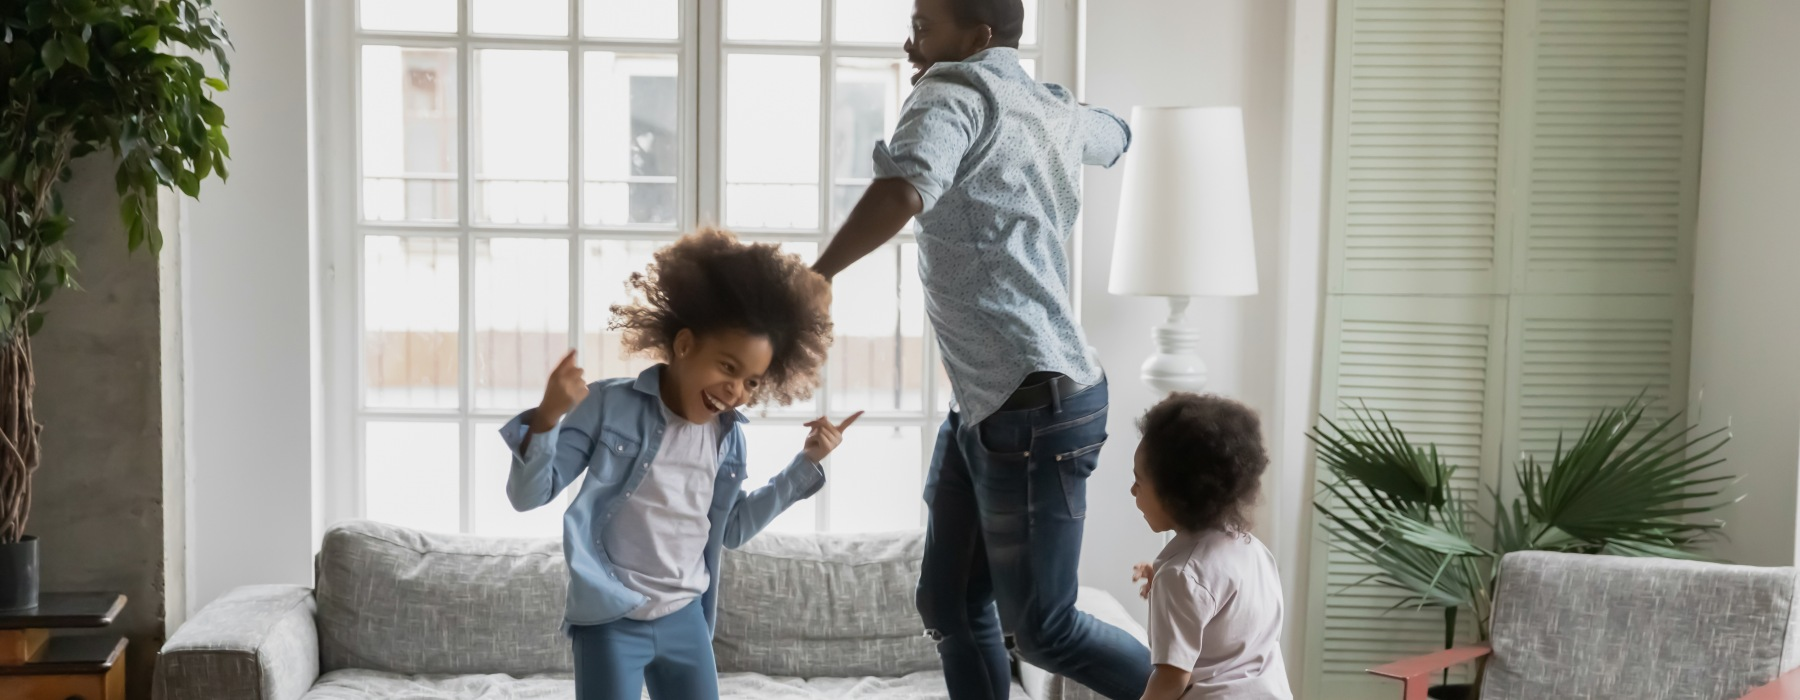 Kids dancing with dad